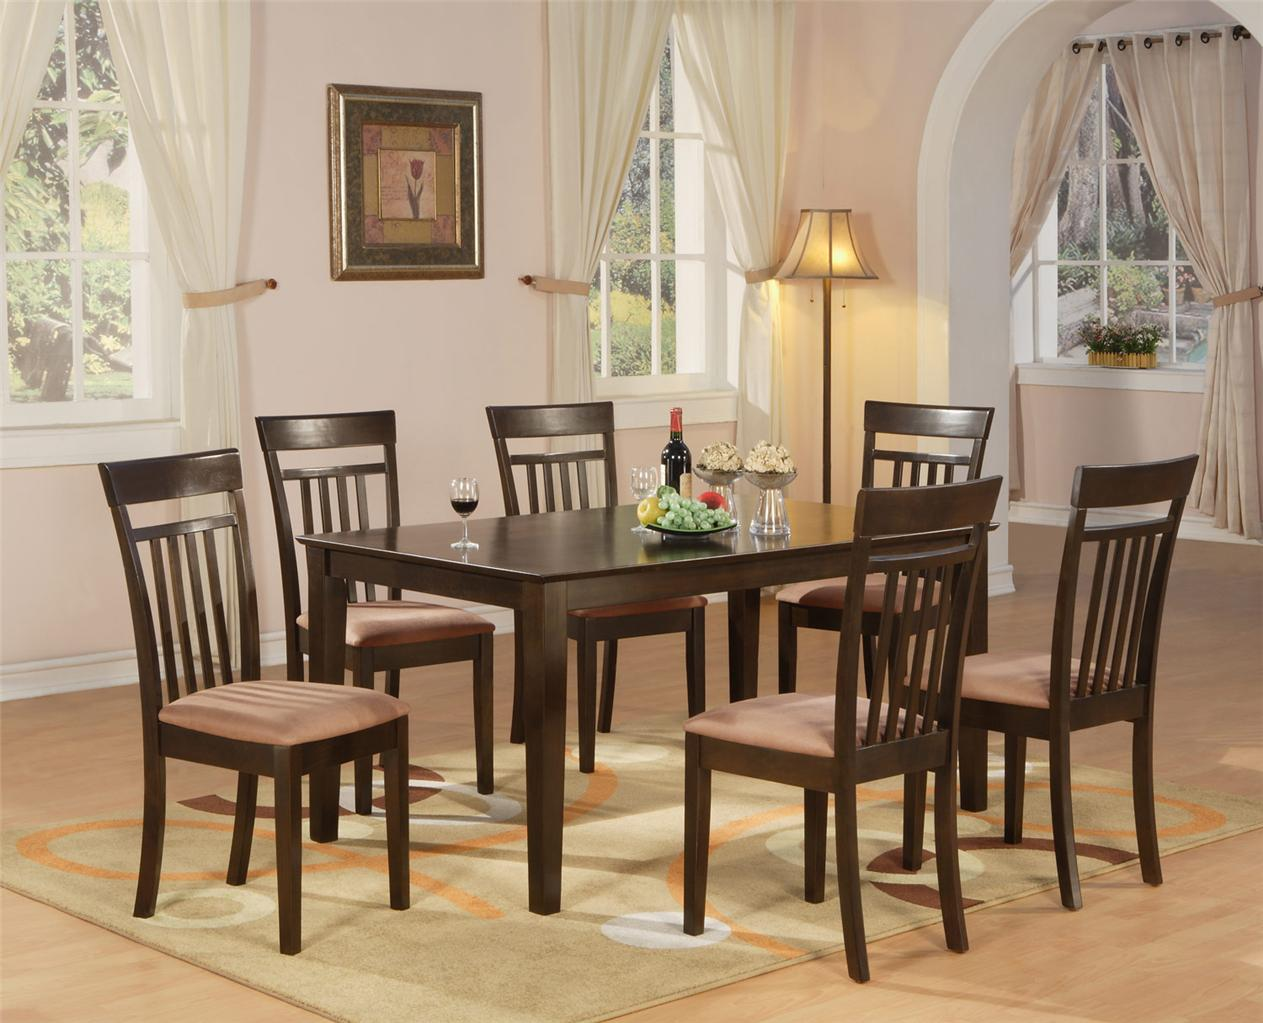 7 PC DINING ROOM DINETTE KITCHEN SET TABLE AND 6 CHAIRS